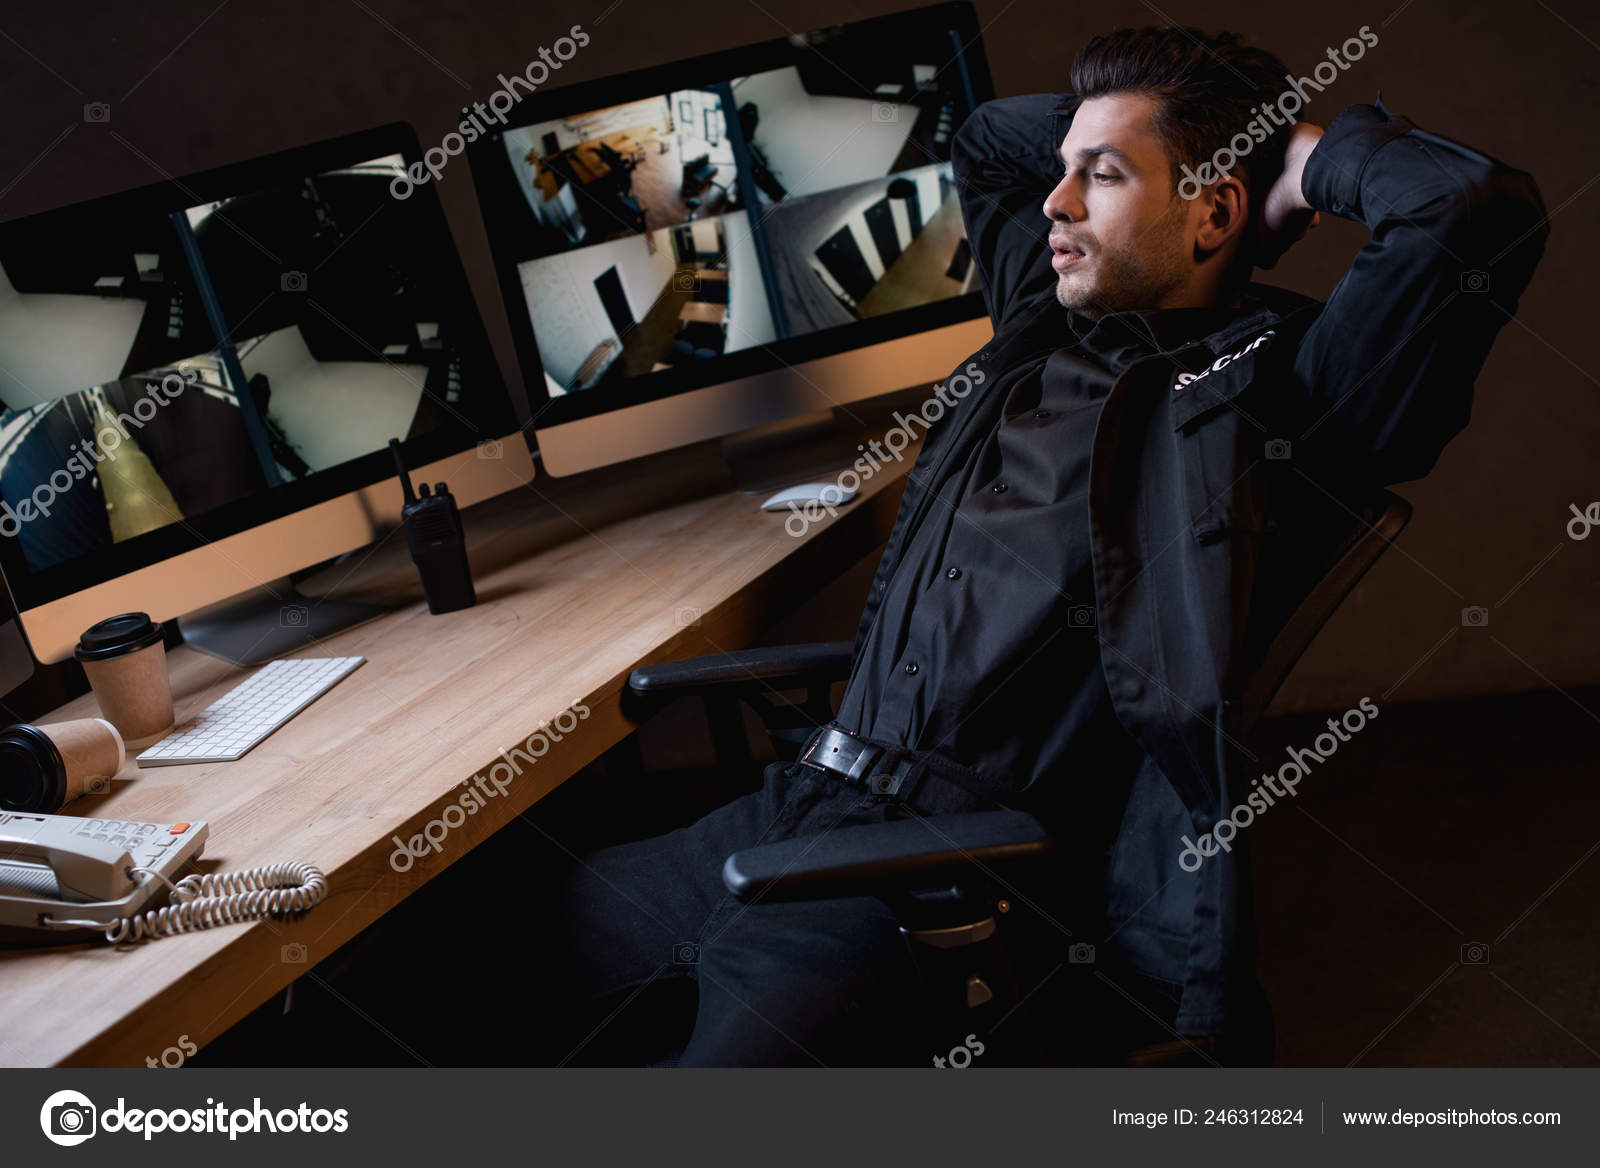 613c939a Guard Uniform Crossed Arms Looking Computer Monitor — Stock Photo ...